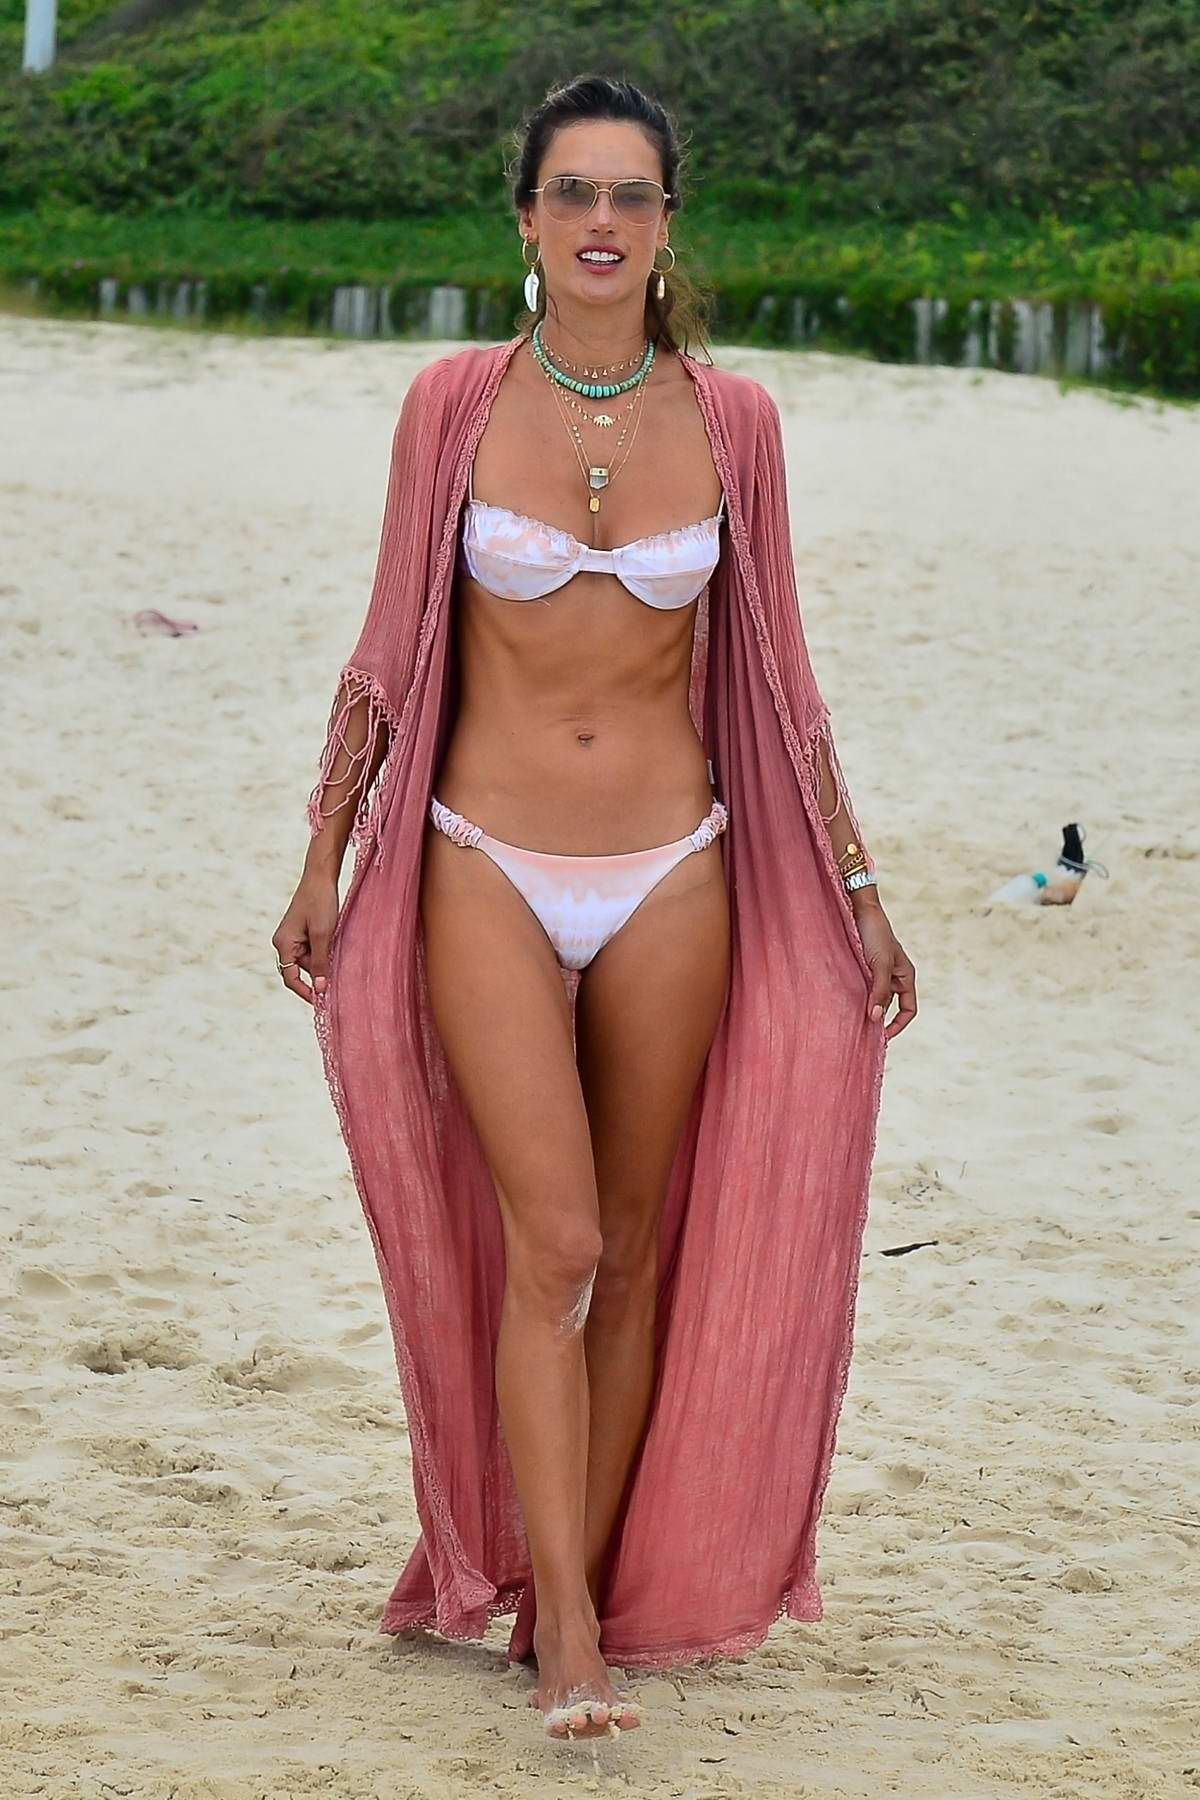 Alessandra Ambrosio looks gorgeous in tie-dye bikini while enjoying another beach day with friends in Florianopolis, Brazil